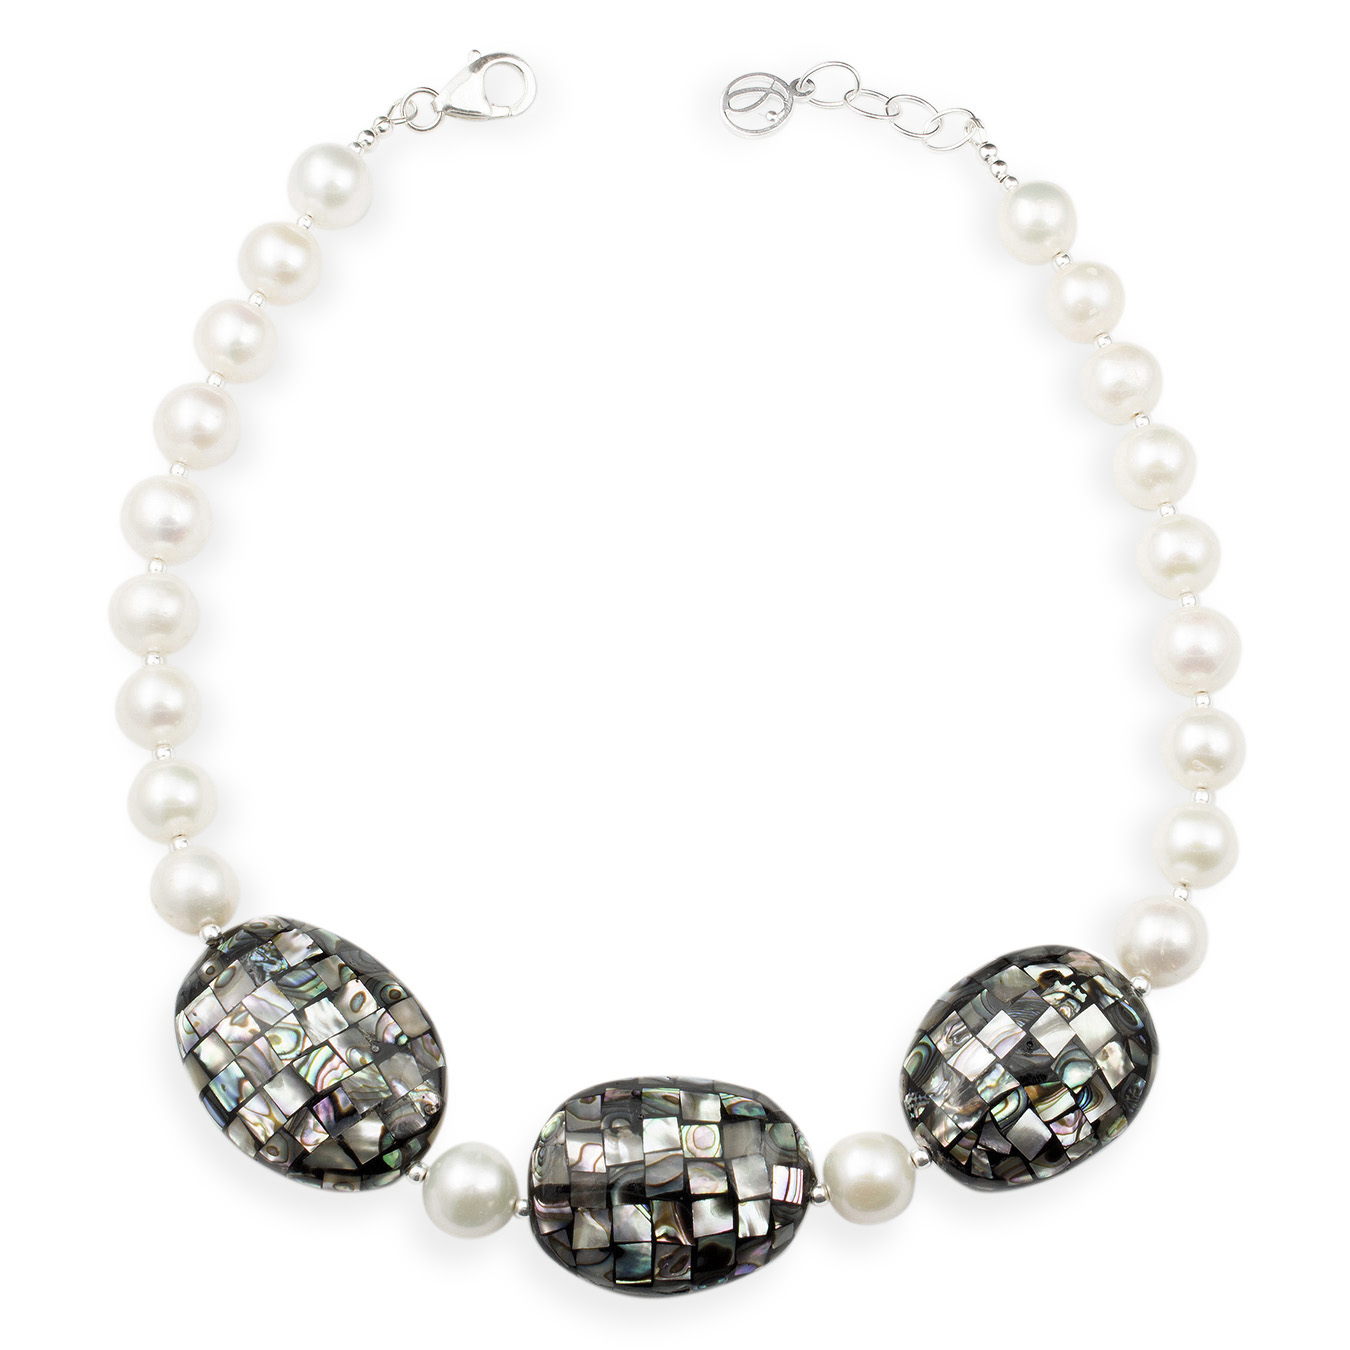 Create your own necklace with choice of AA pearls and paua shell bead